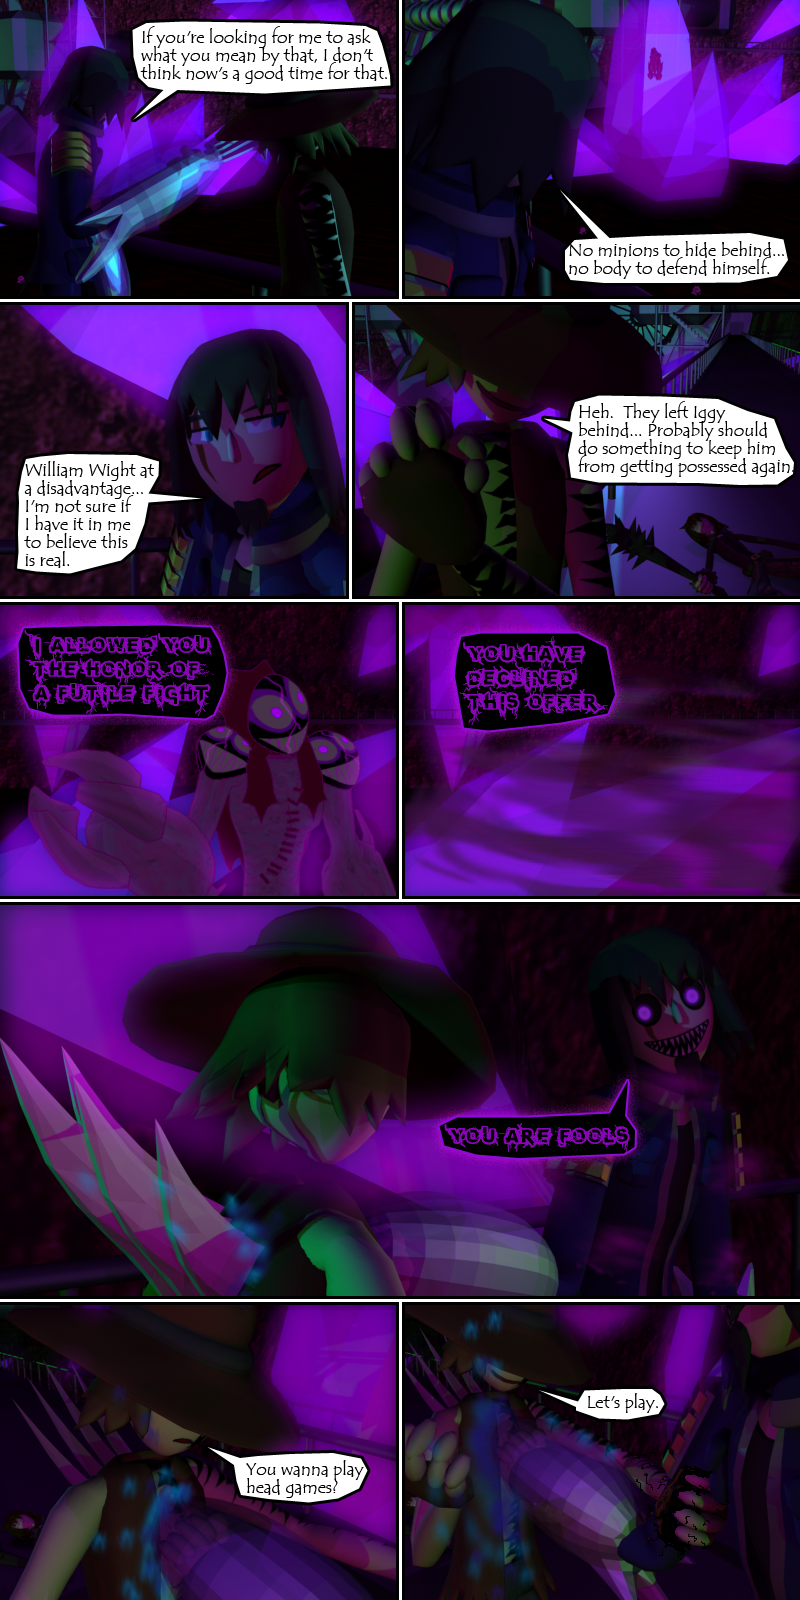 Hey, it's October... time for the comic to get super creepy again.